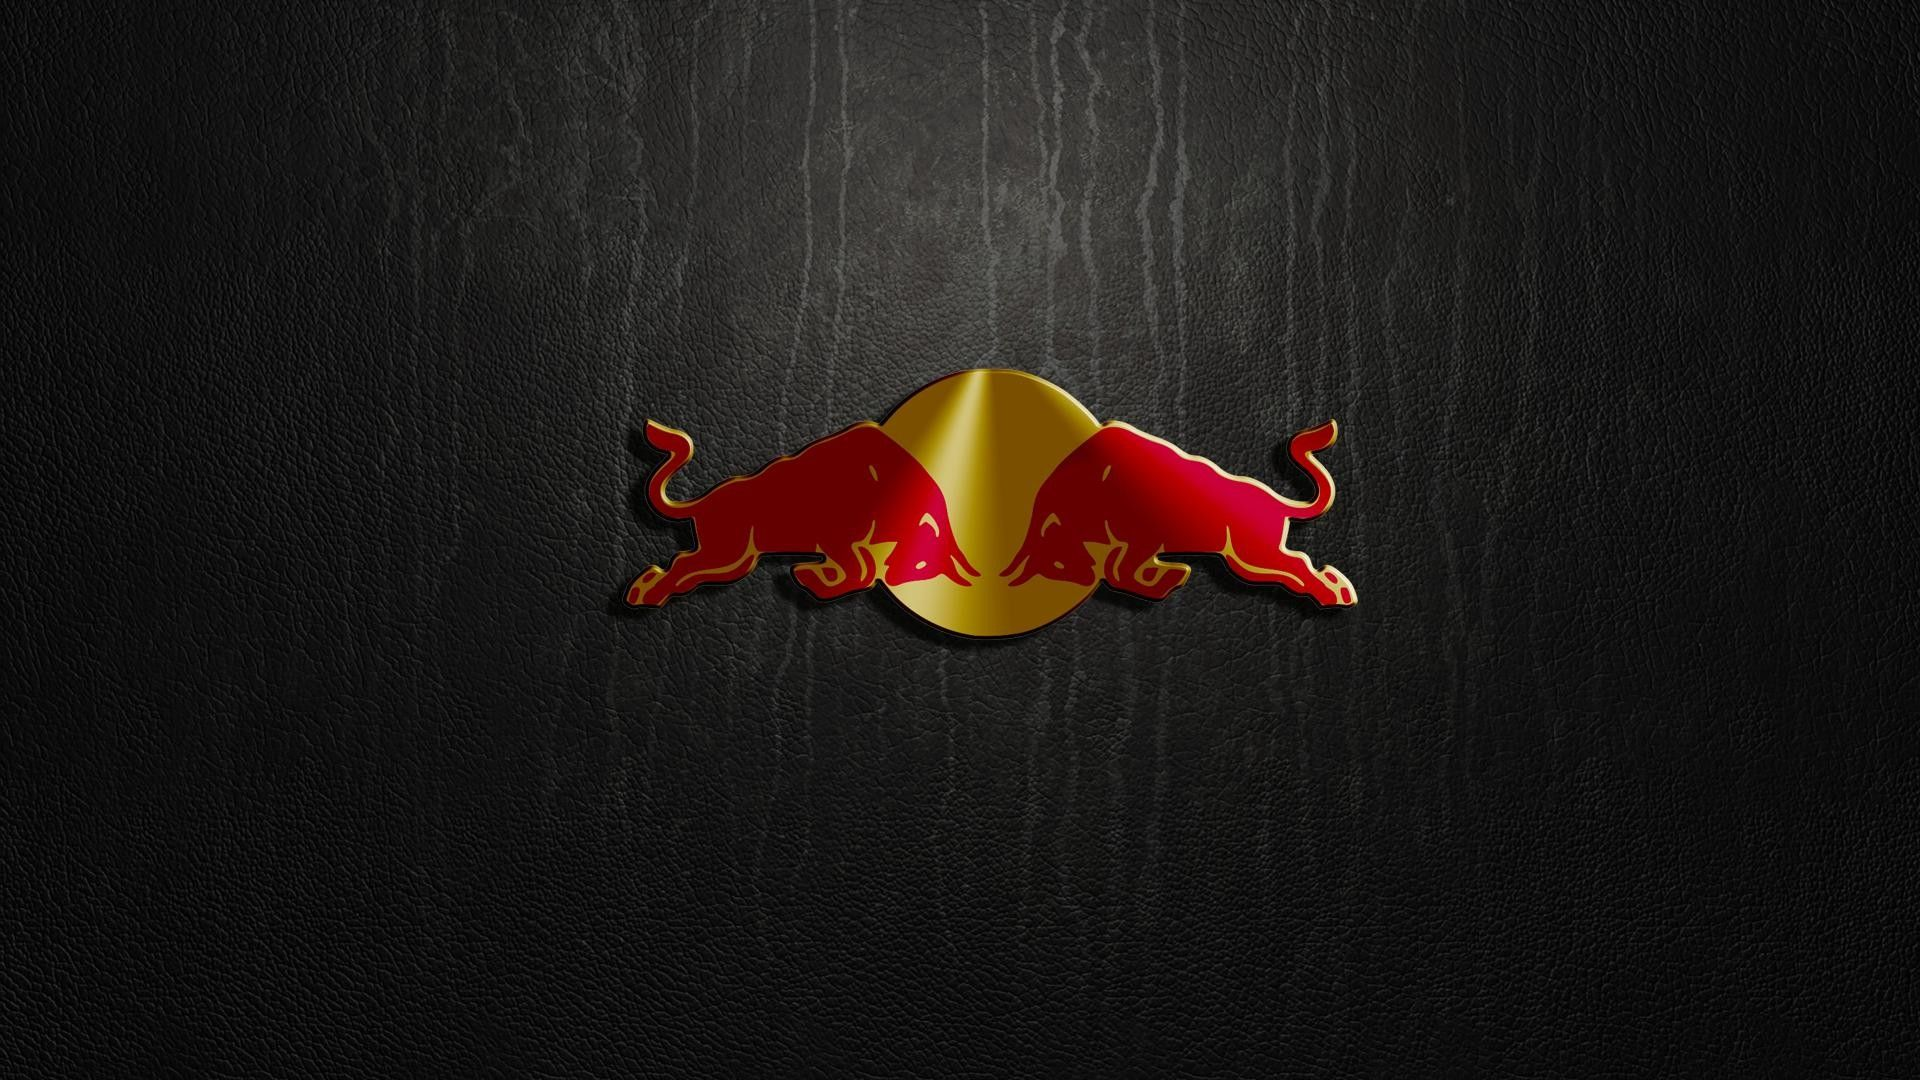 1920x1080 Red Bull Logo wallpaper. Red bull images, Red